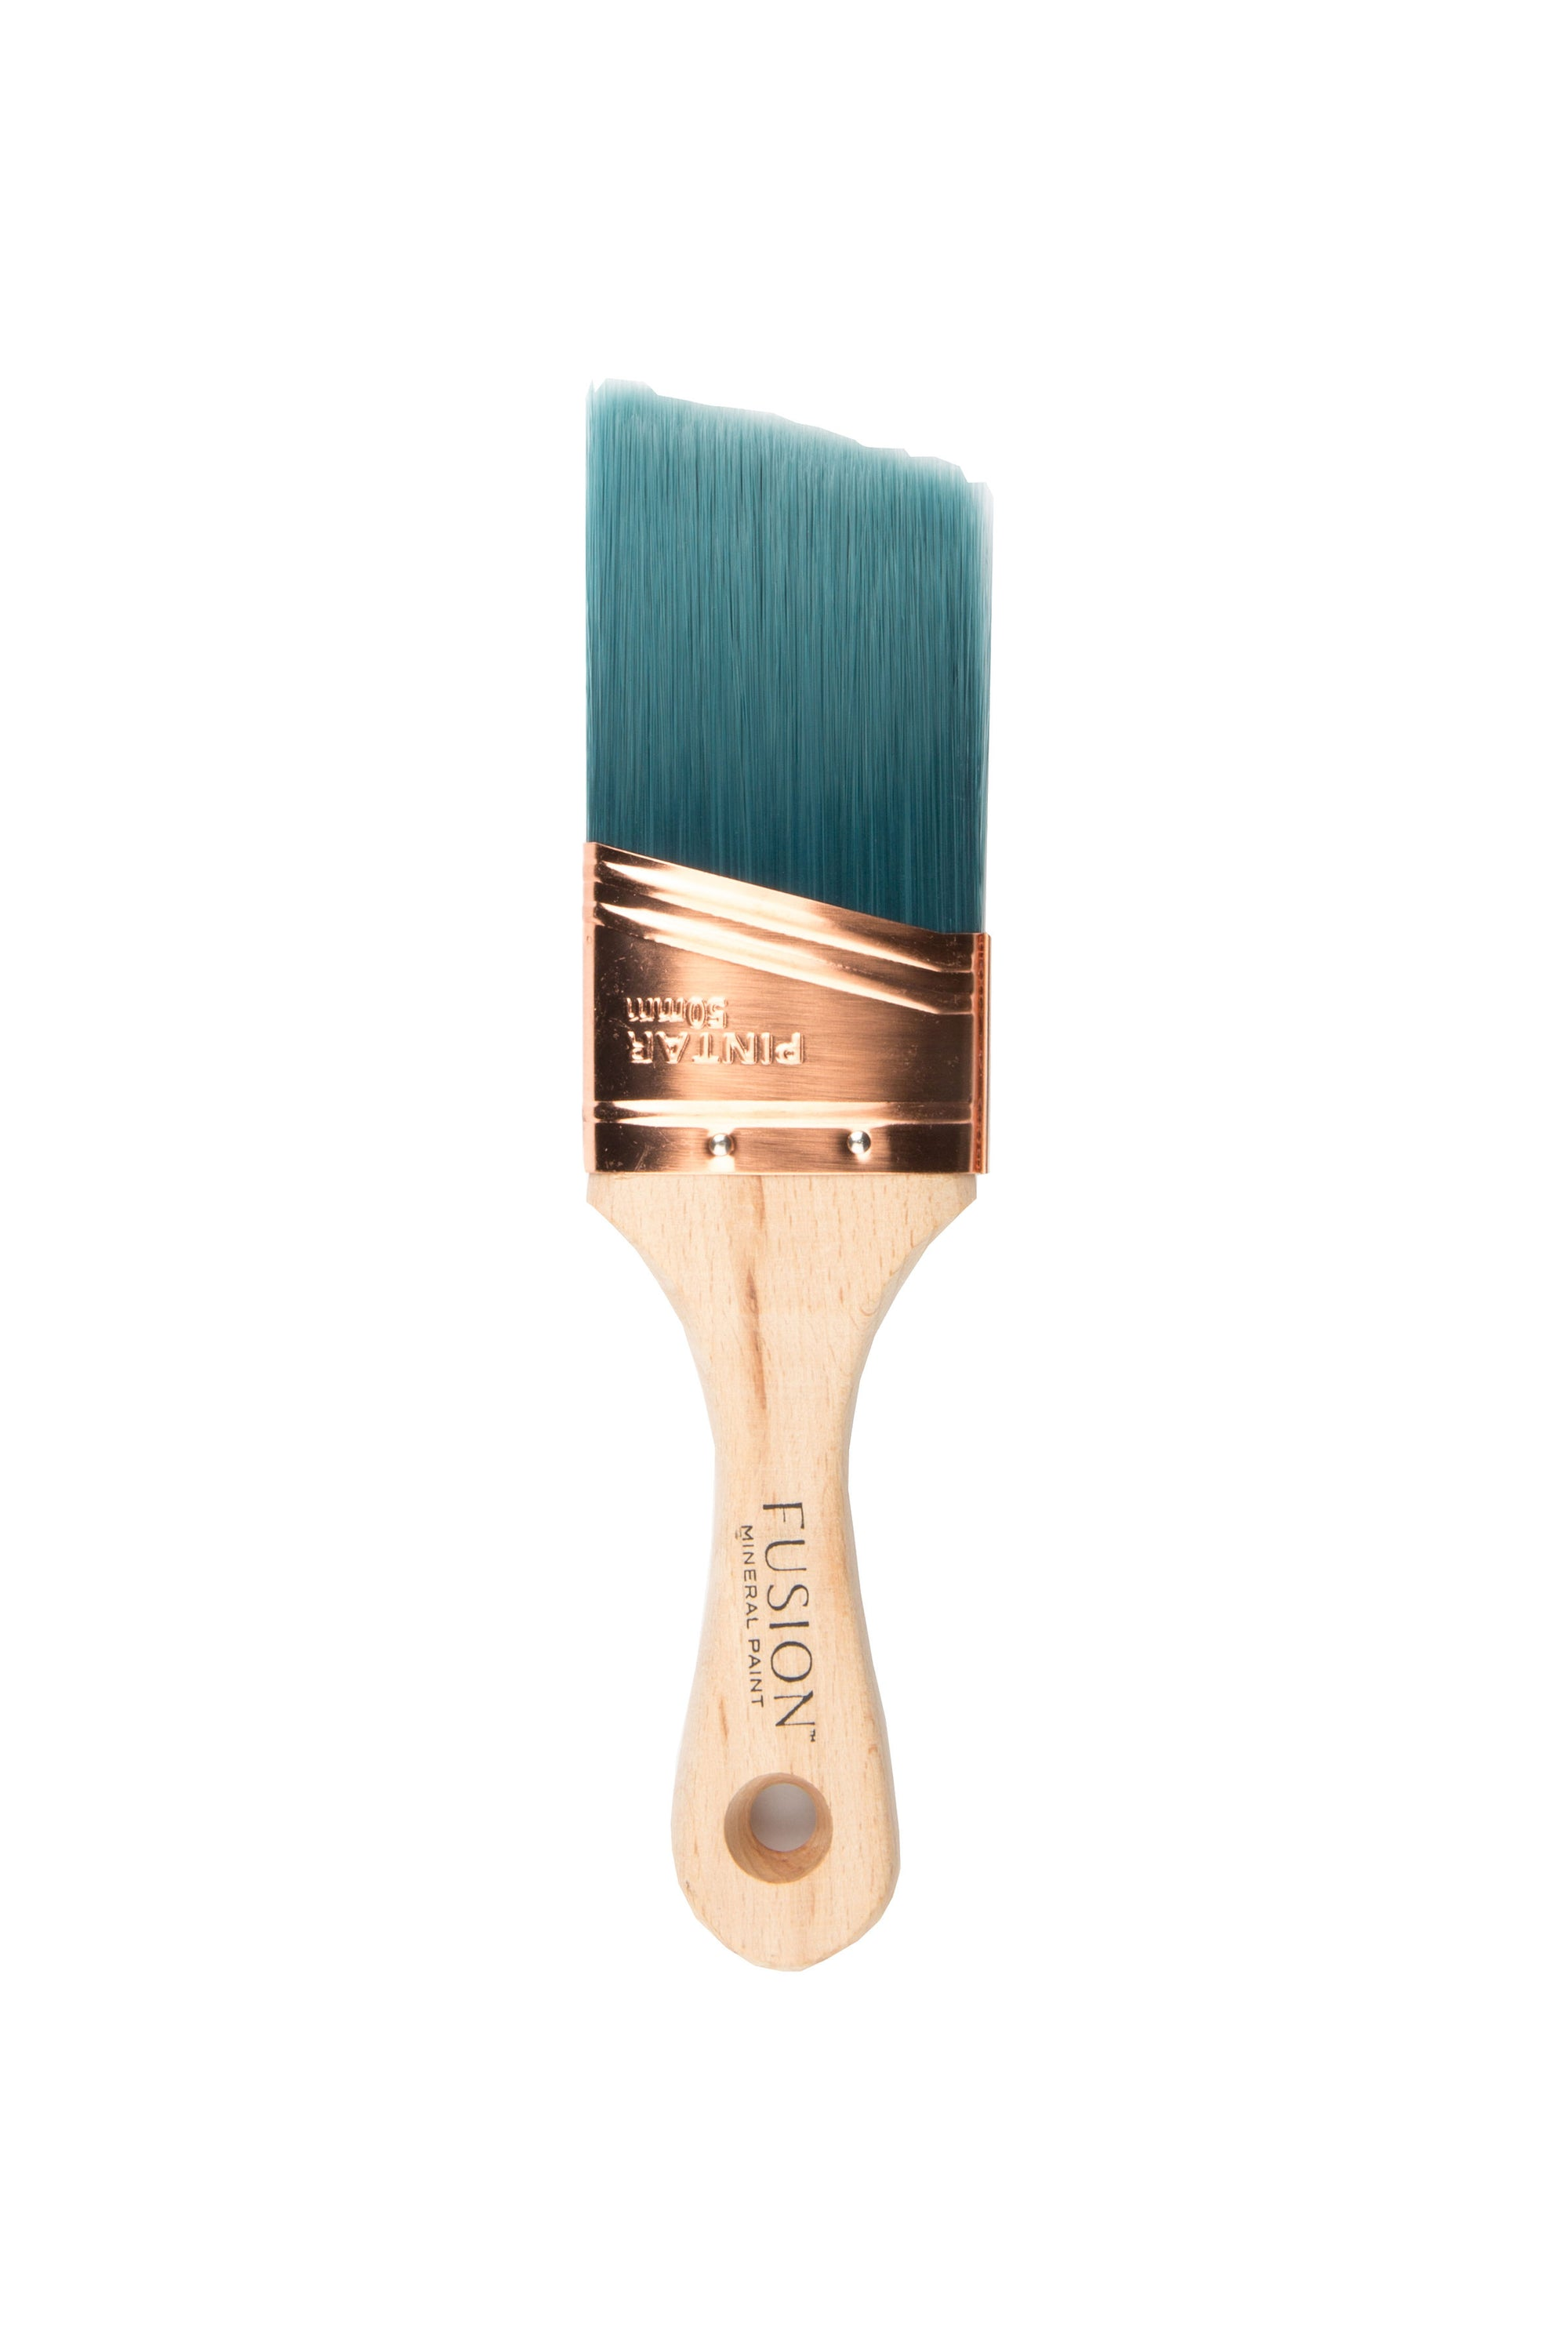 "Fusion 2"" Angled Synthetic Brush Farmhouse Inspired"